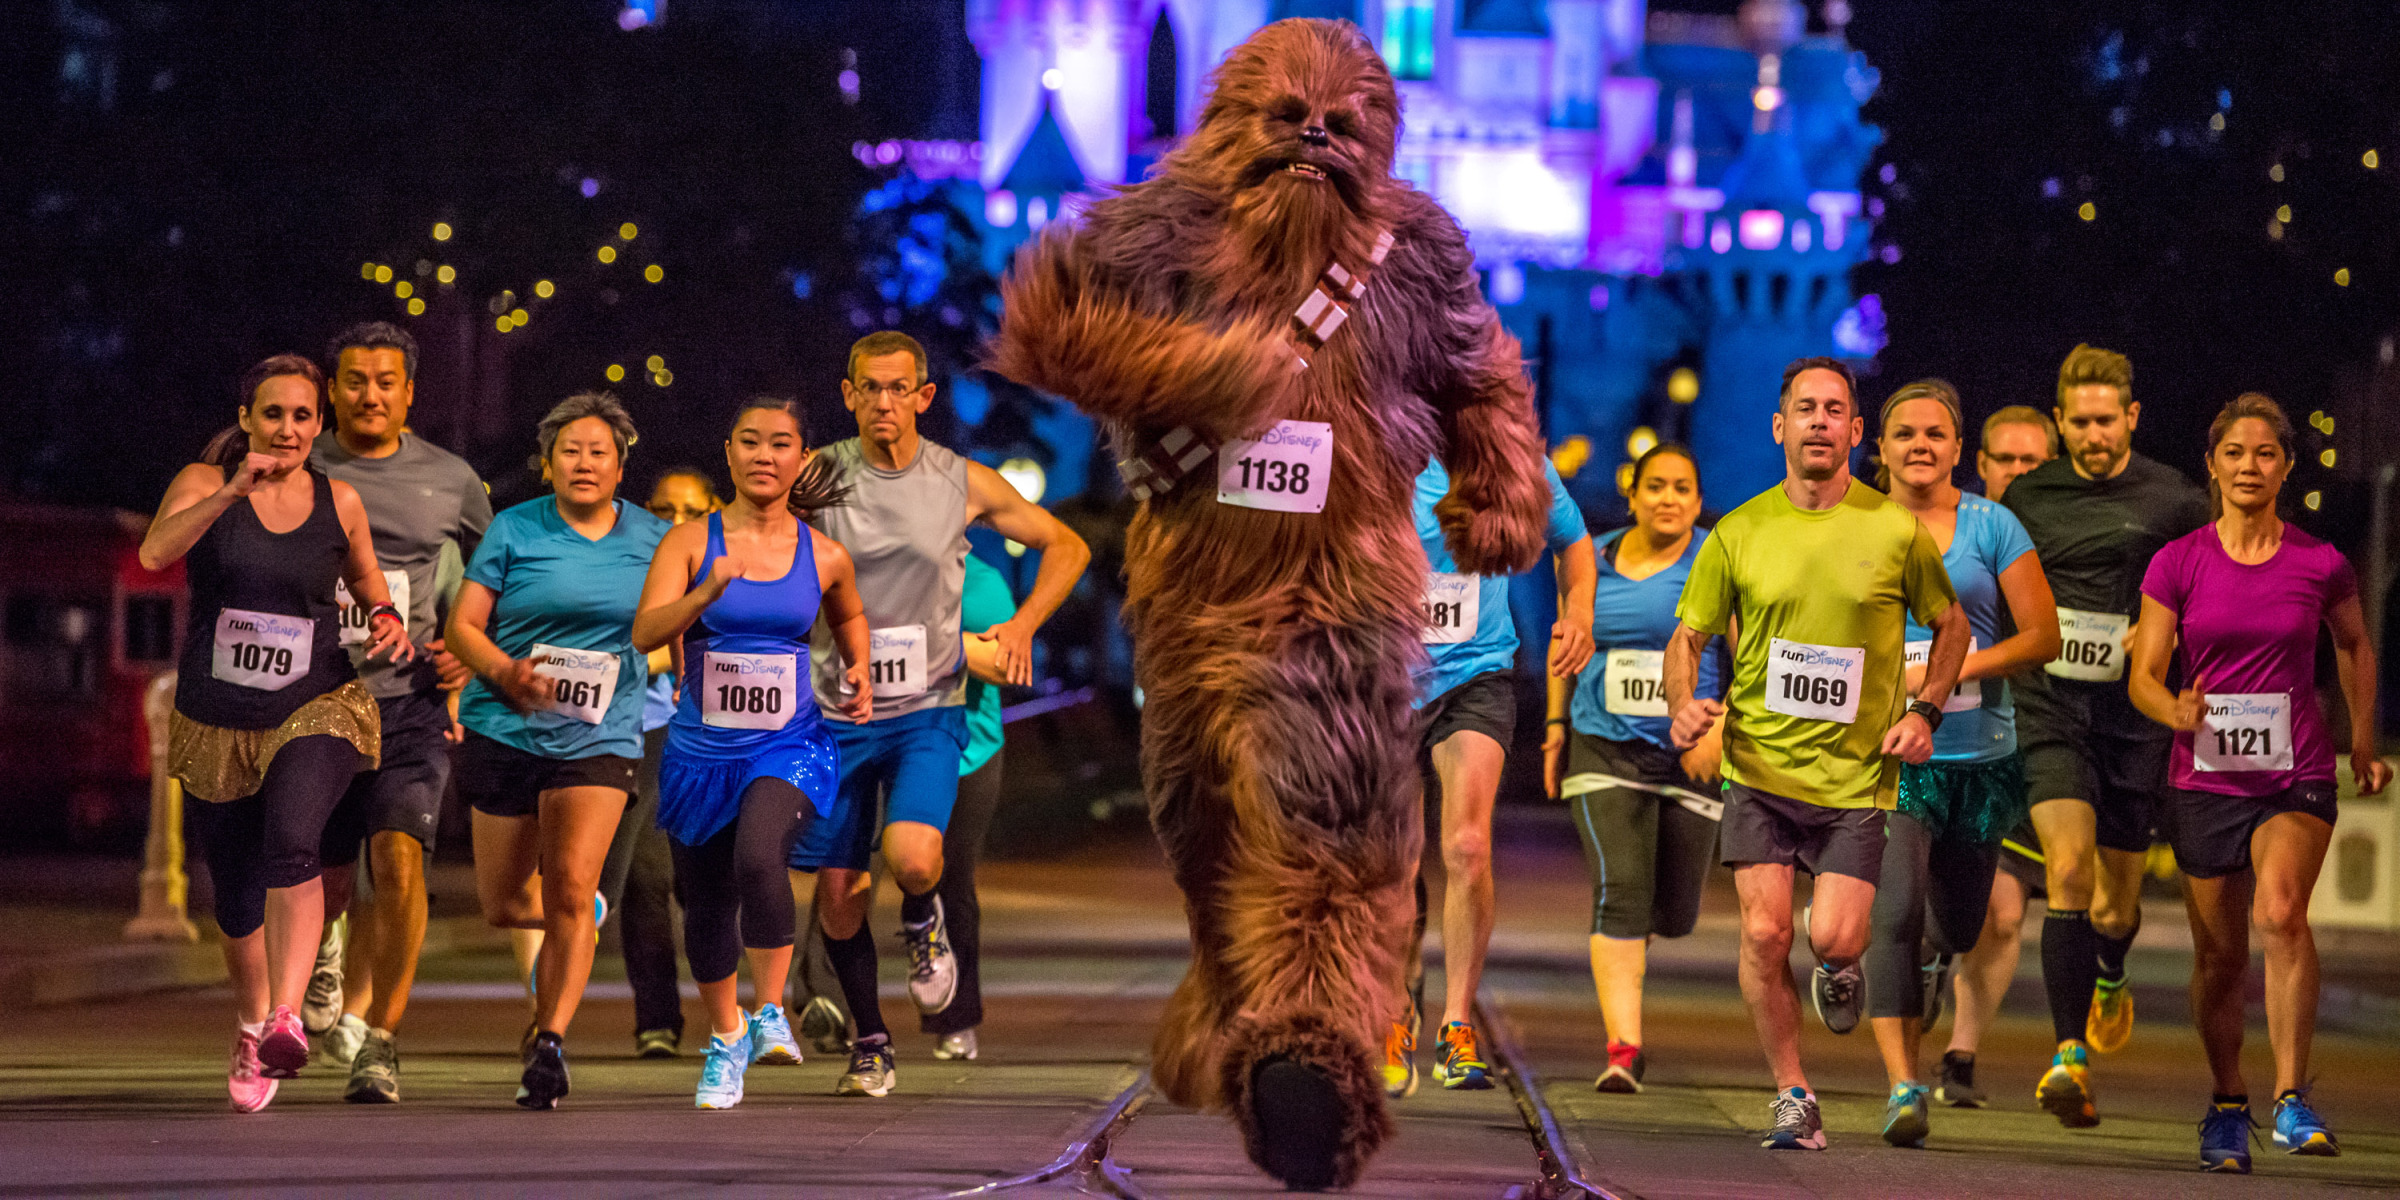 star wars running